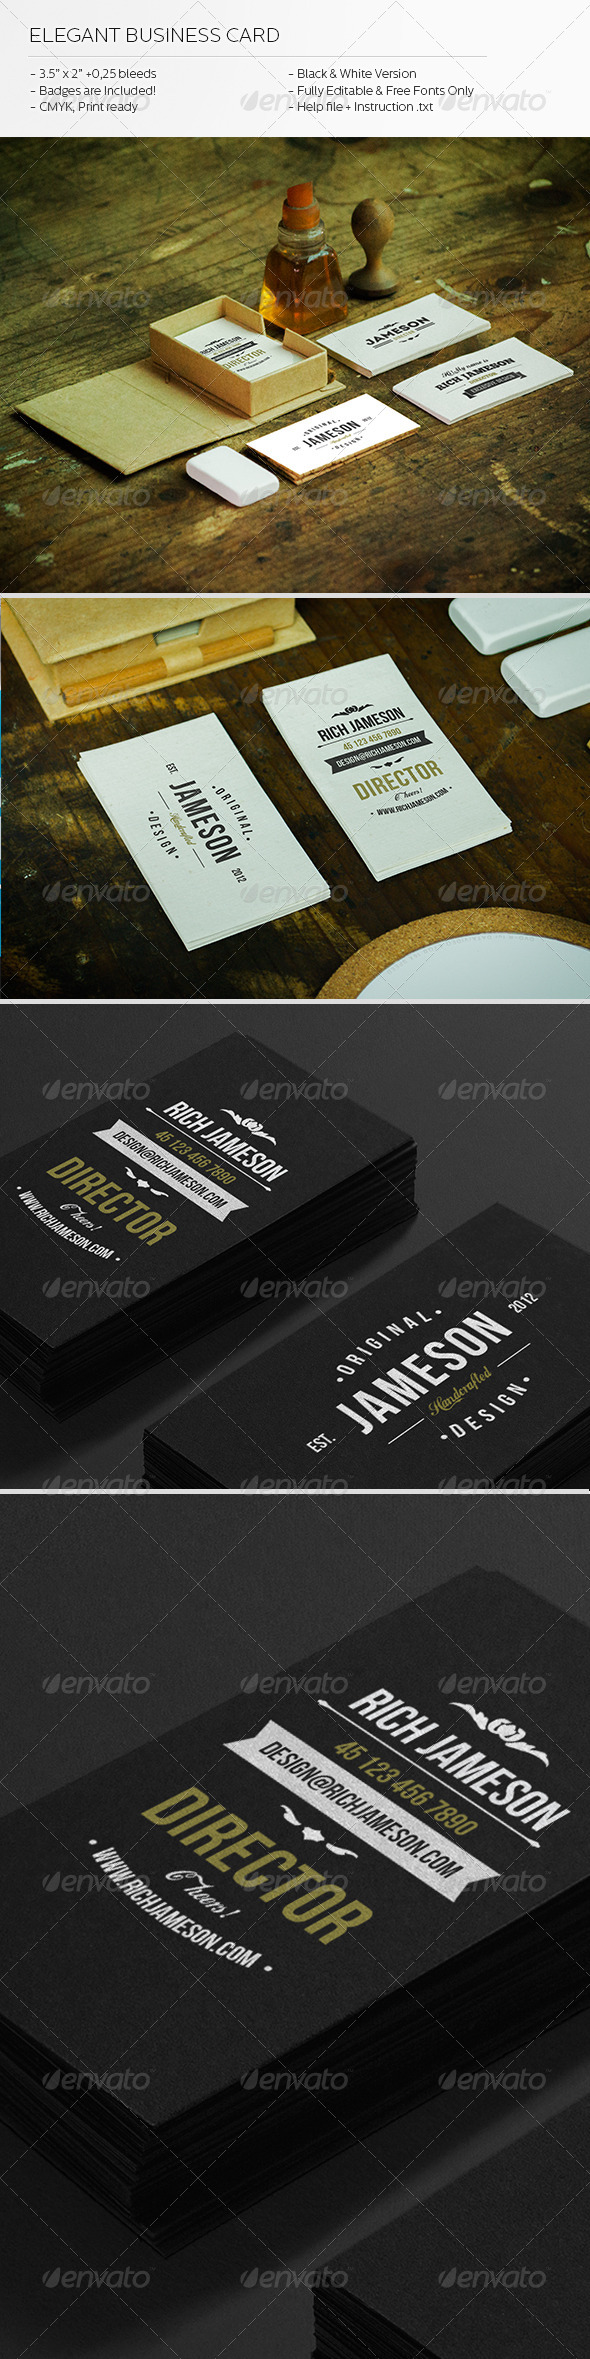 GraphicRiver Elegant Business Card 5982786